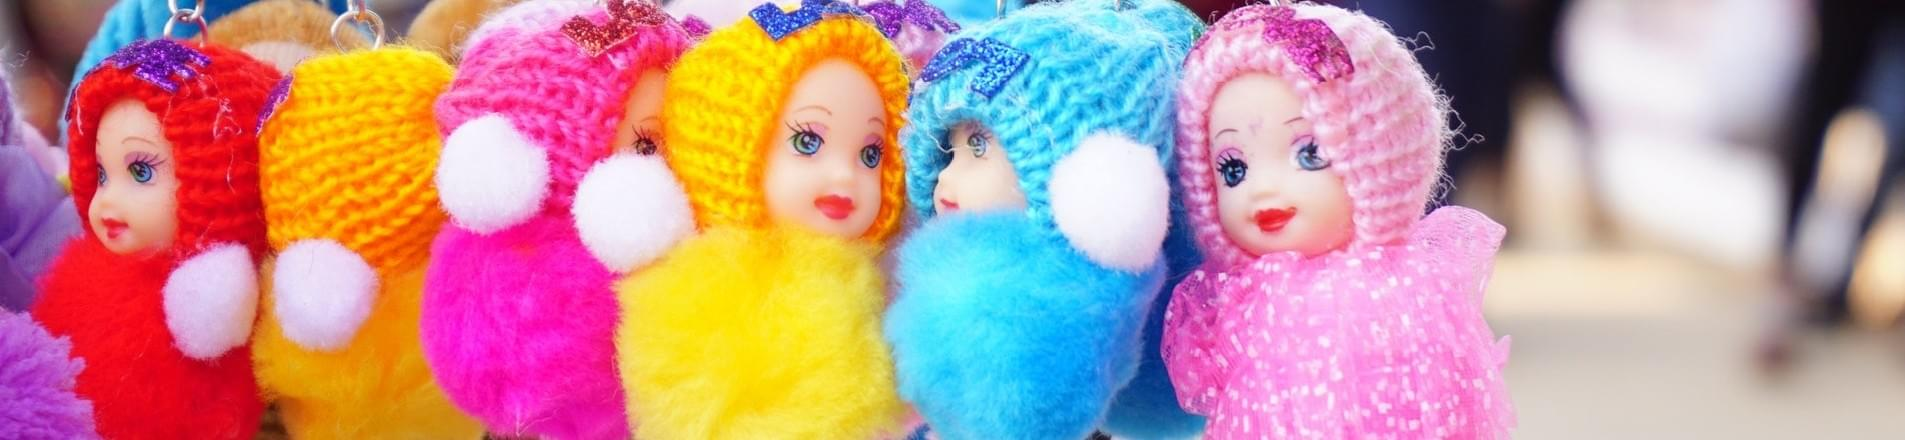 Dolls with disabilities range launched